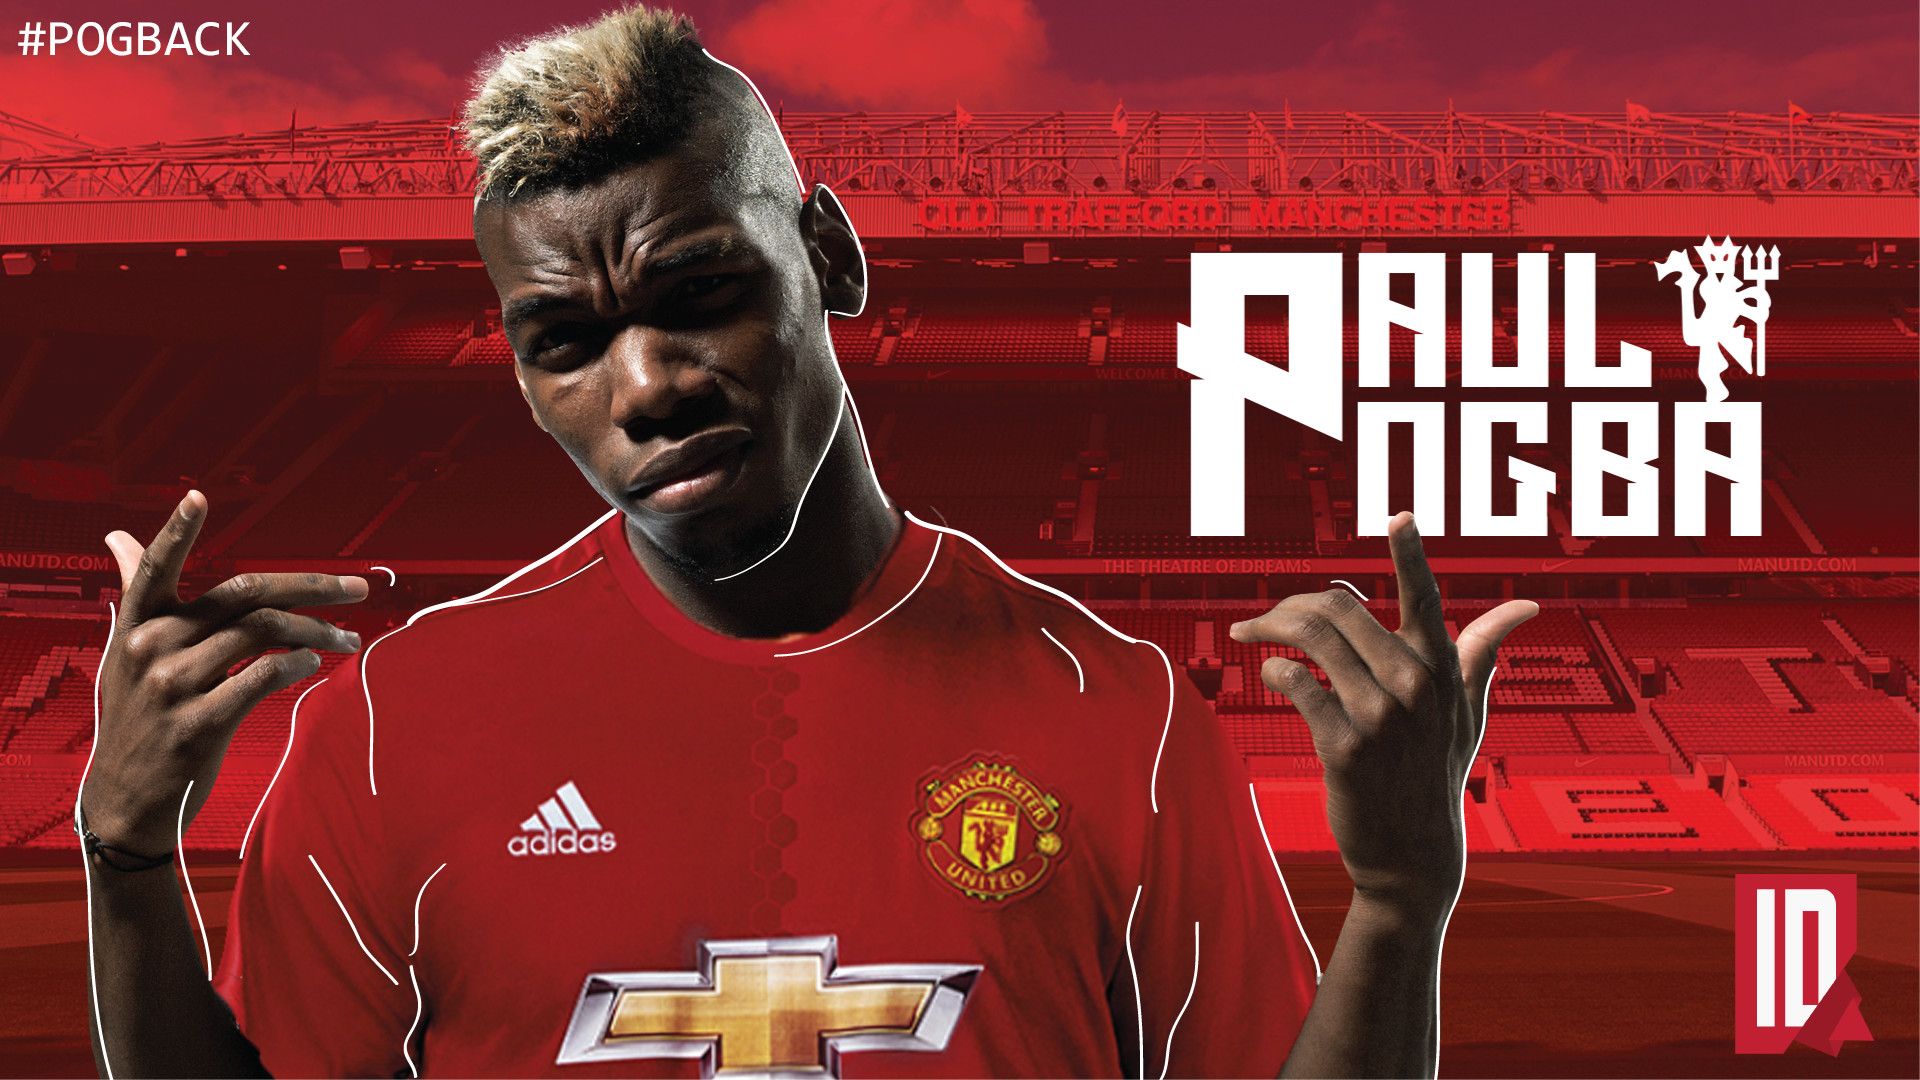 Paul Pogba Wallpapers (79+ images)